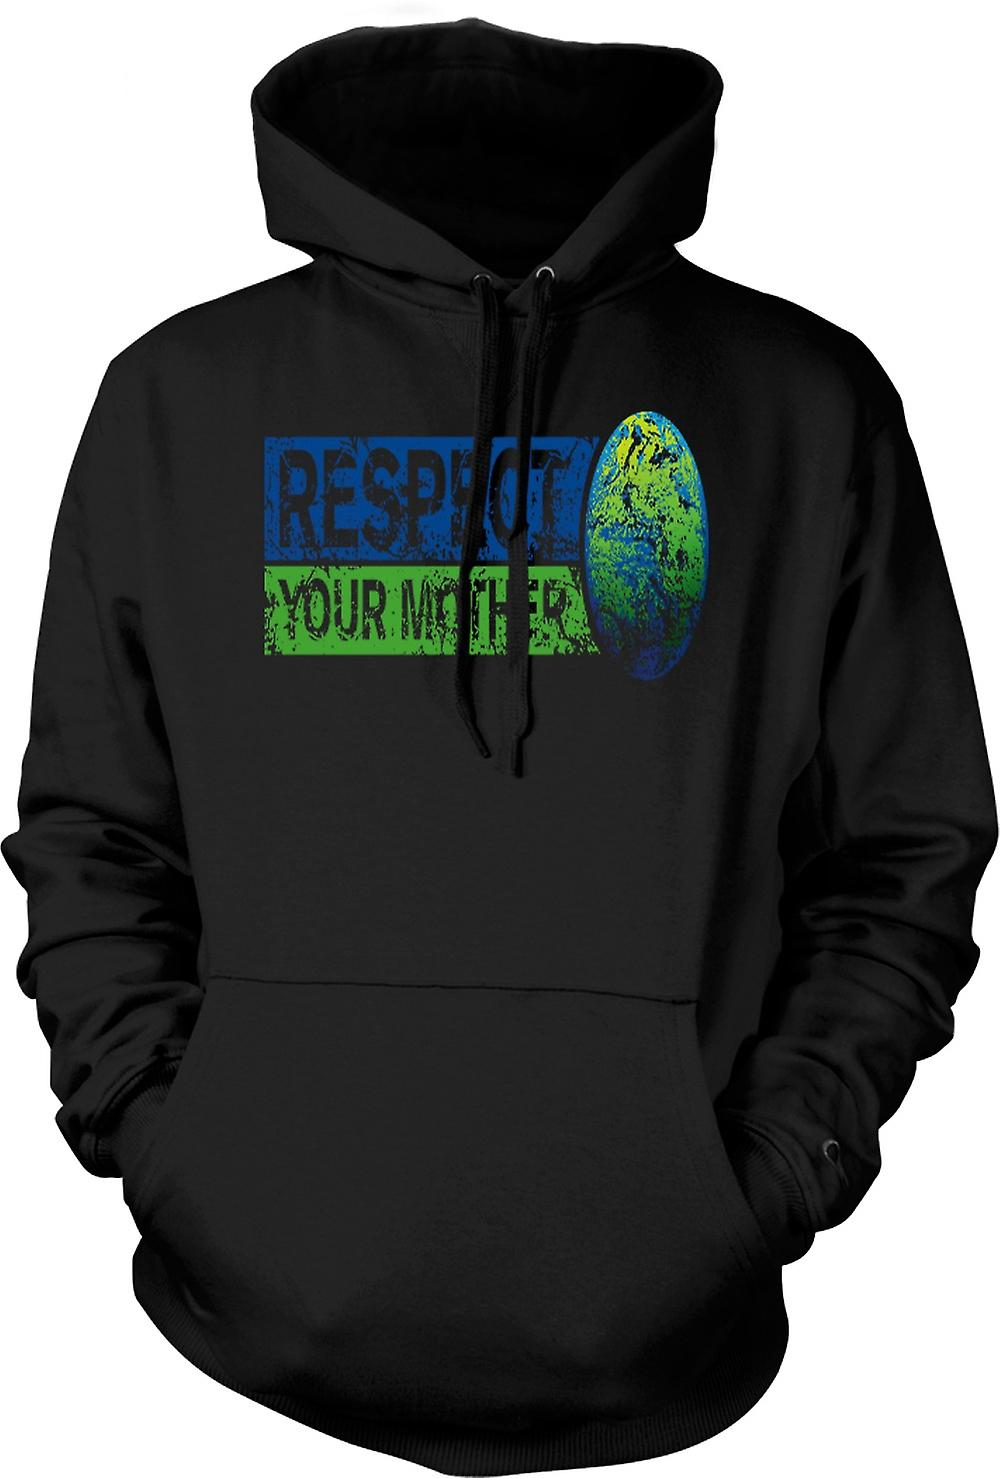 Kids Hoodie - Respect your Mother Earth - Funny